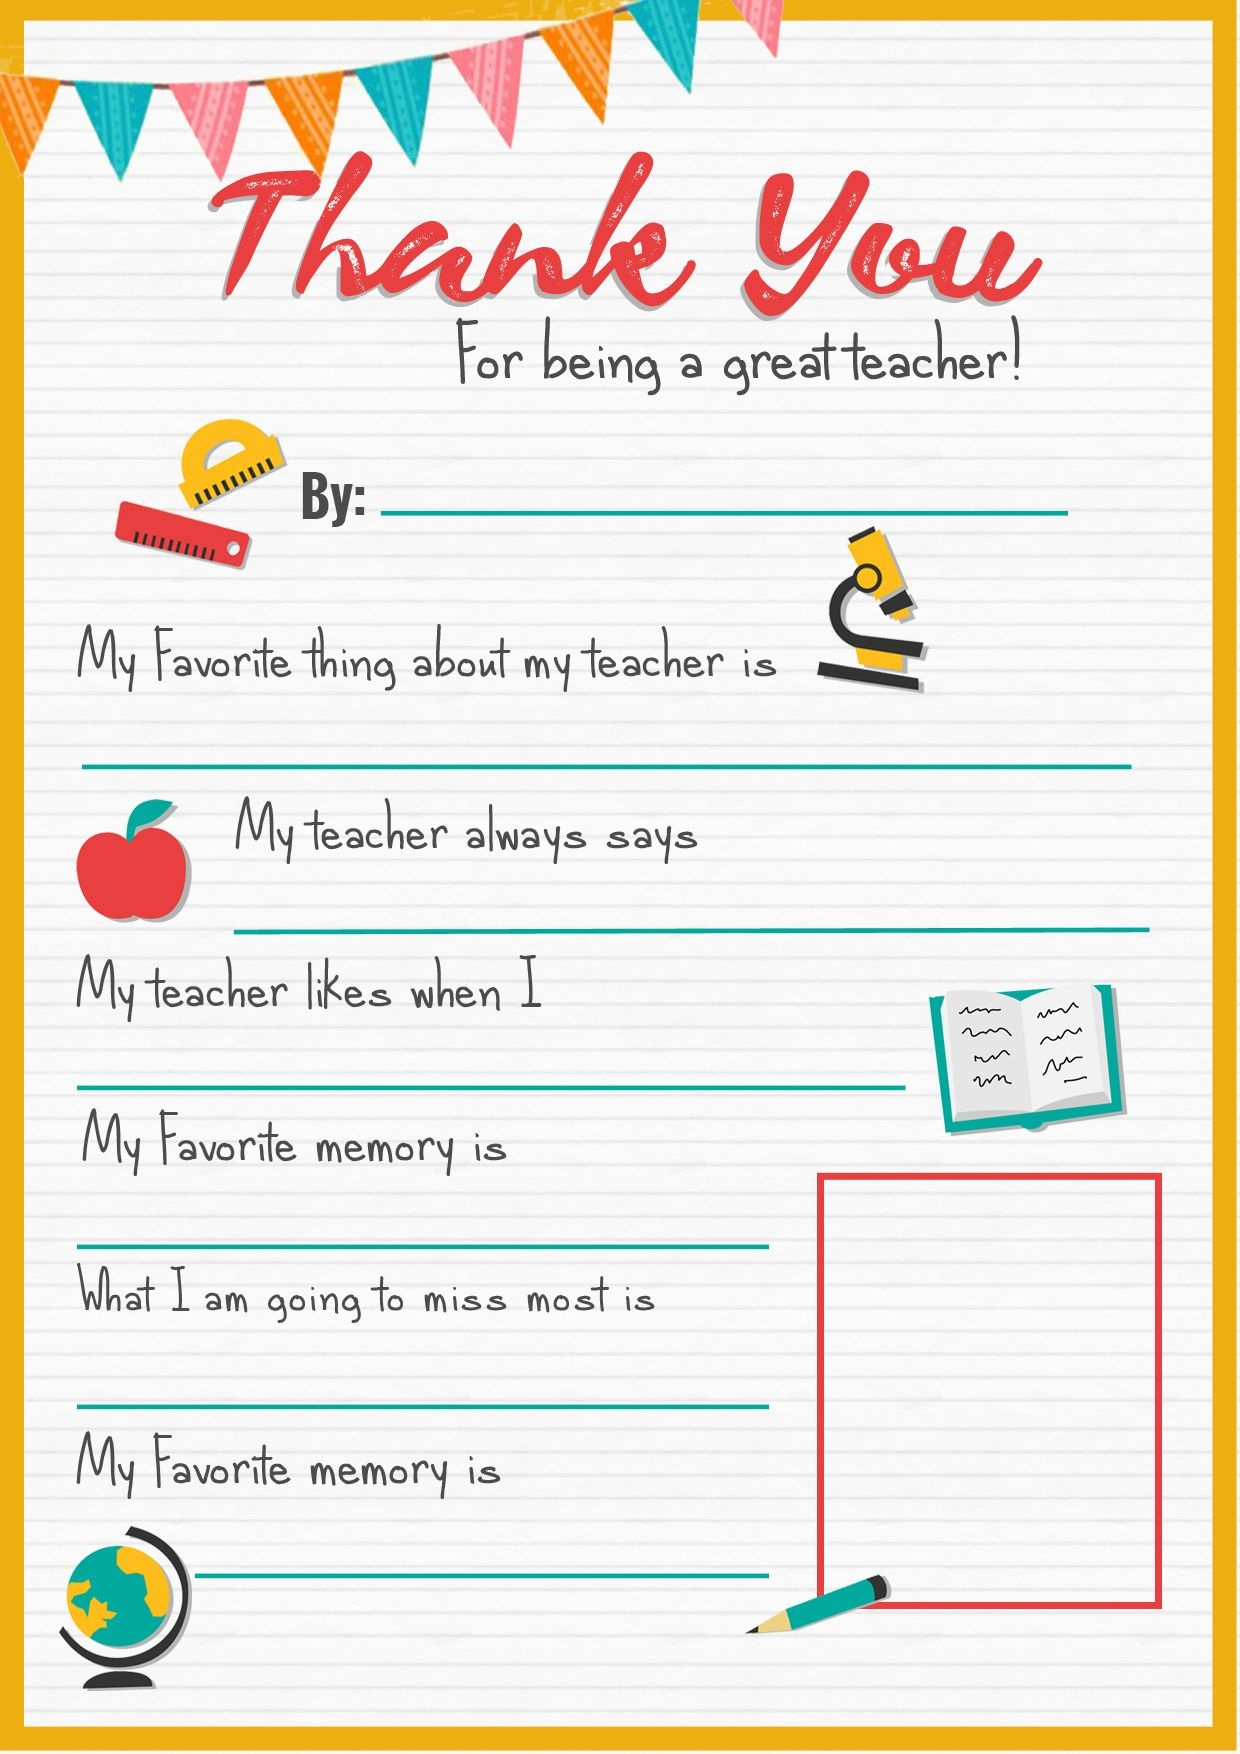 Thank You Teacher - A Free Printable | Stay At Home Mum | Back To - Thank You Teacher Printables Free